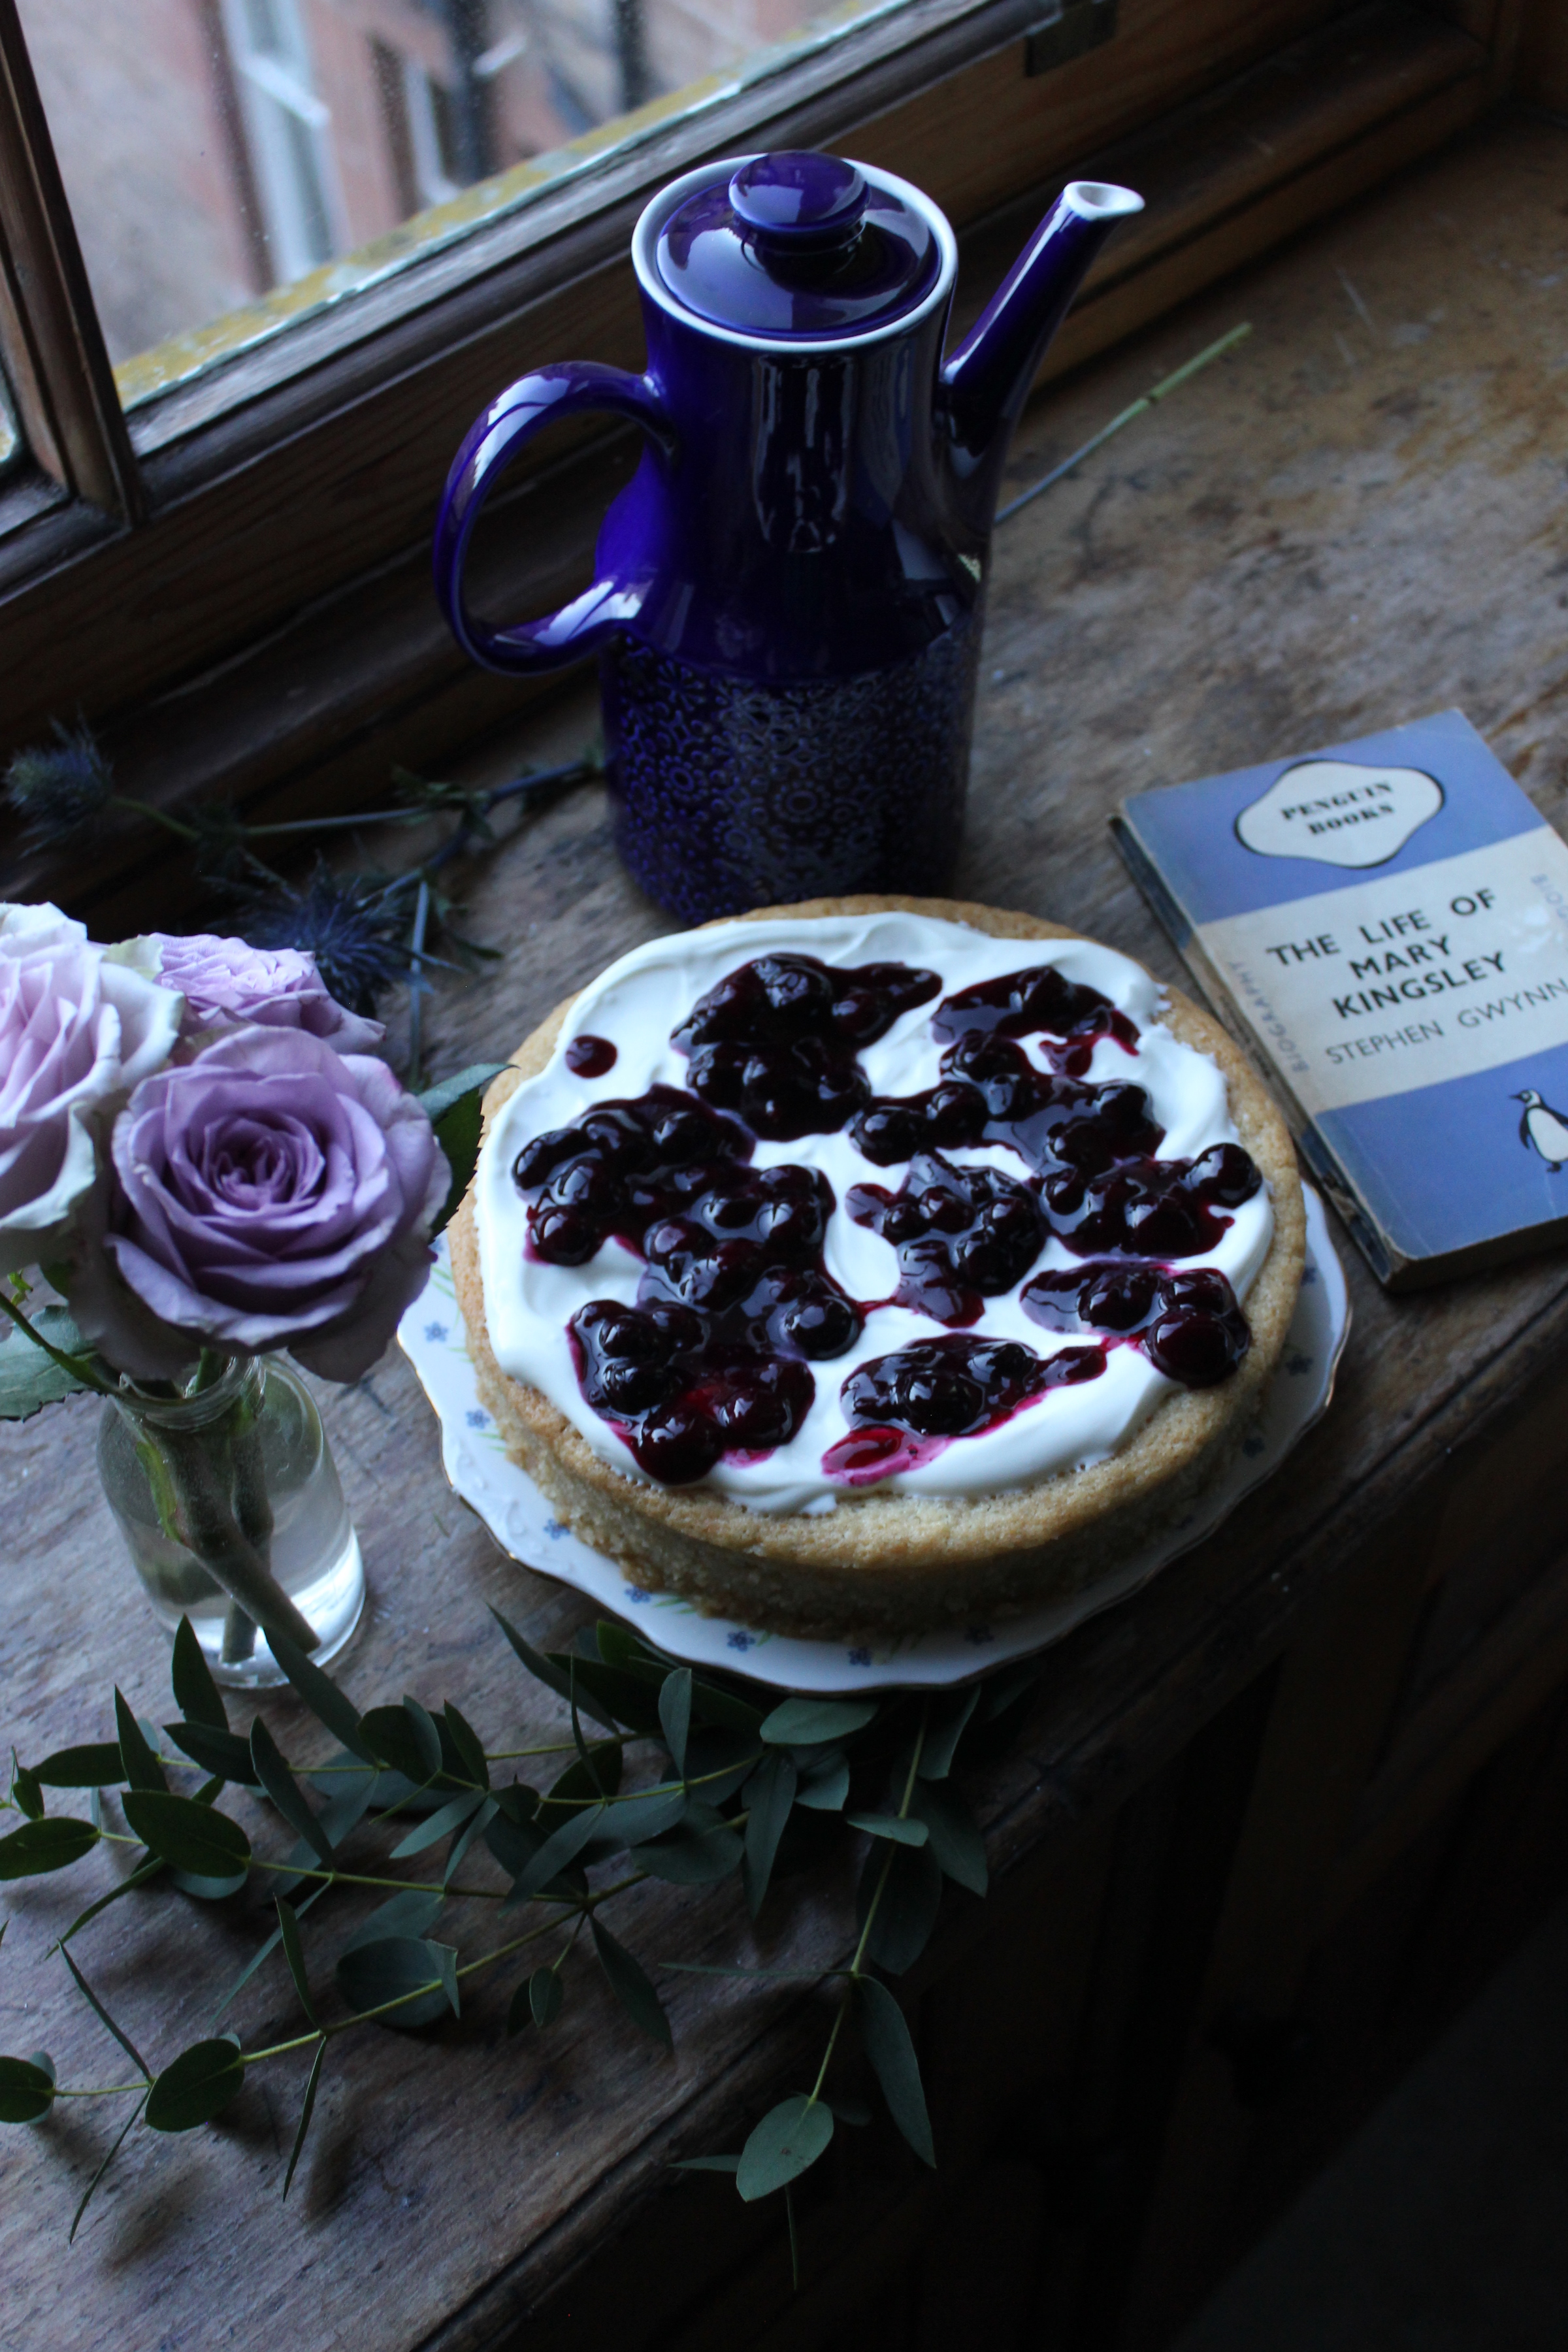 Lemon tendercake with blueberry compote